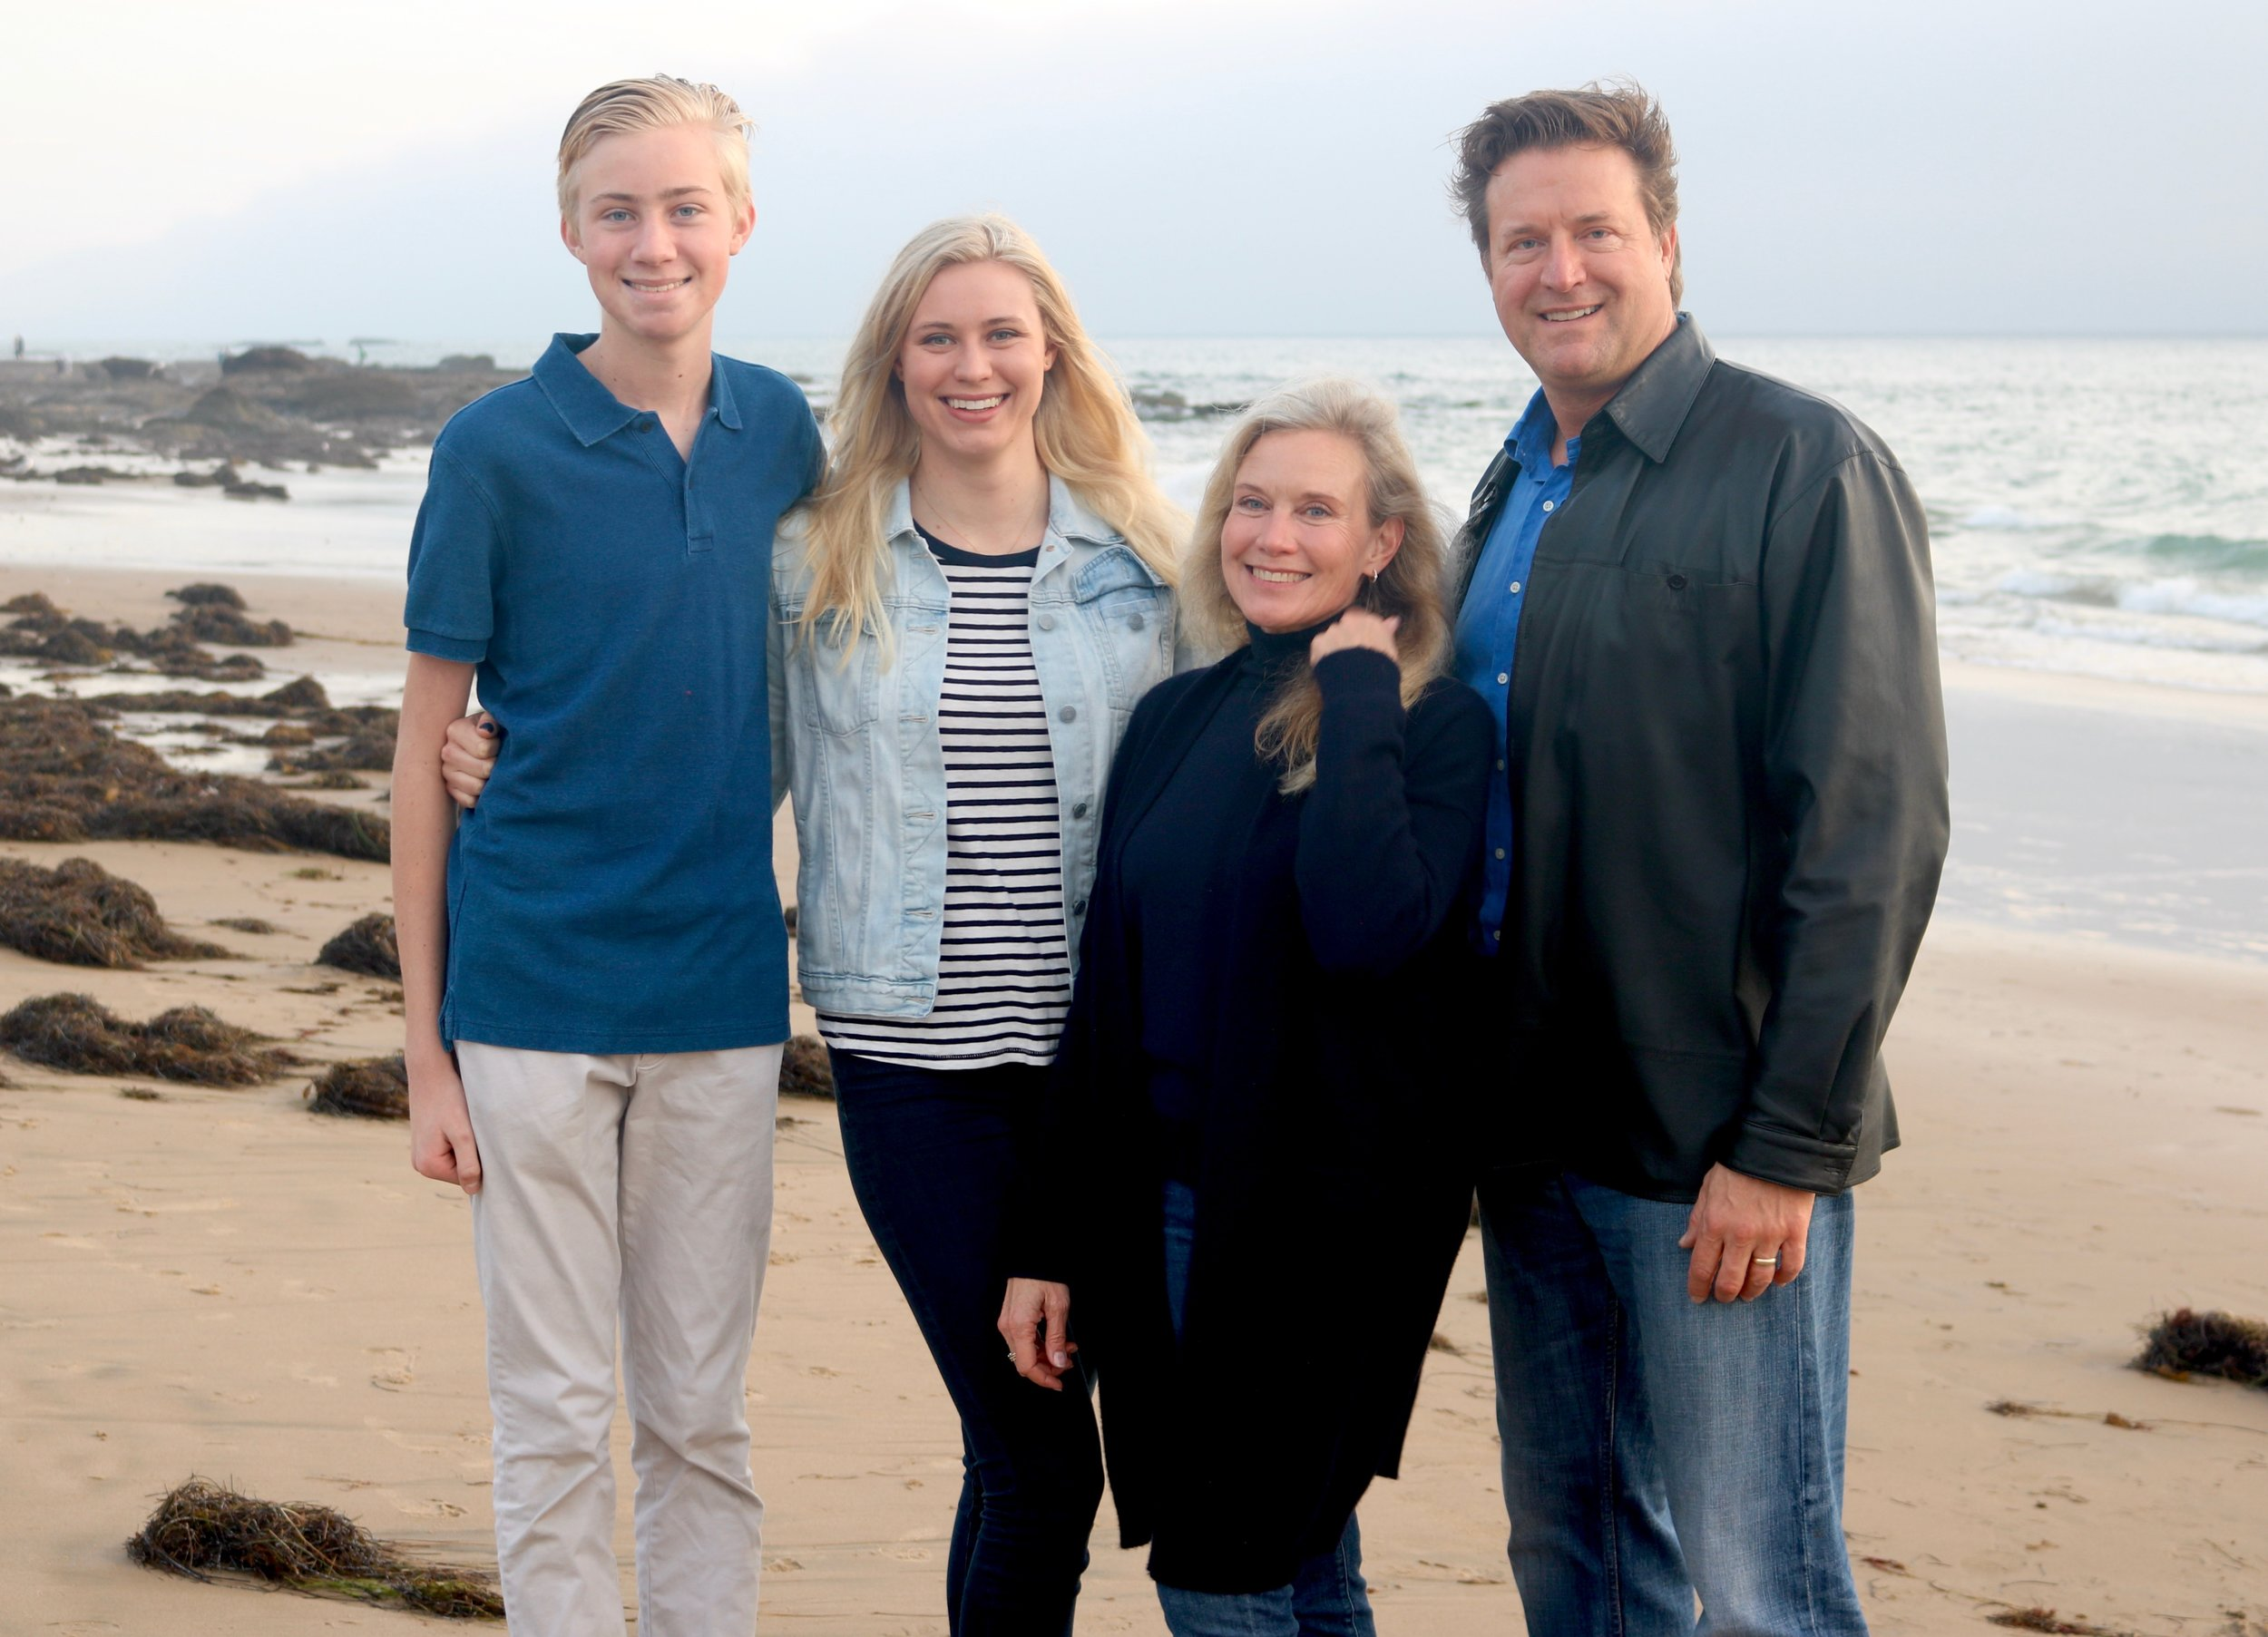 Hodson family moments before being swept away by a rogue wave in Crystal Cove, CA; Jonathan, Hayley, Sonya, Jim, 2017.